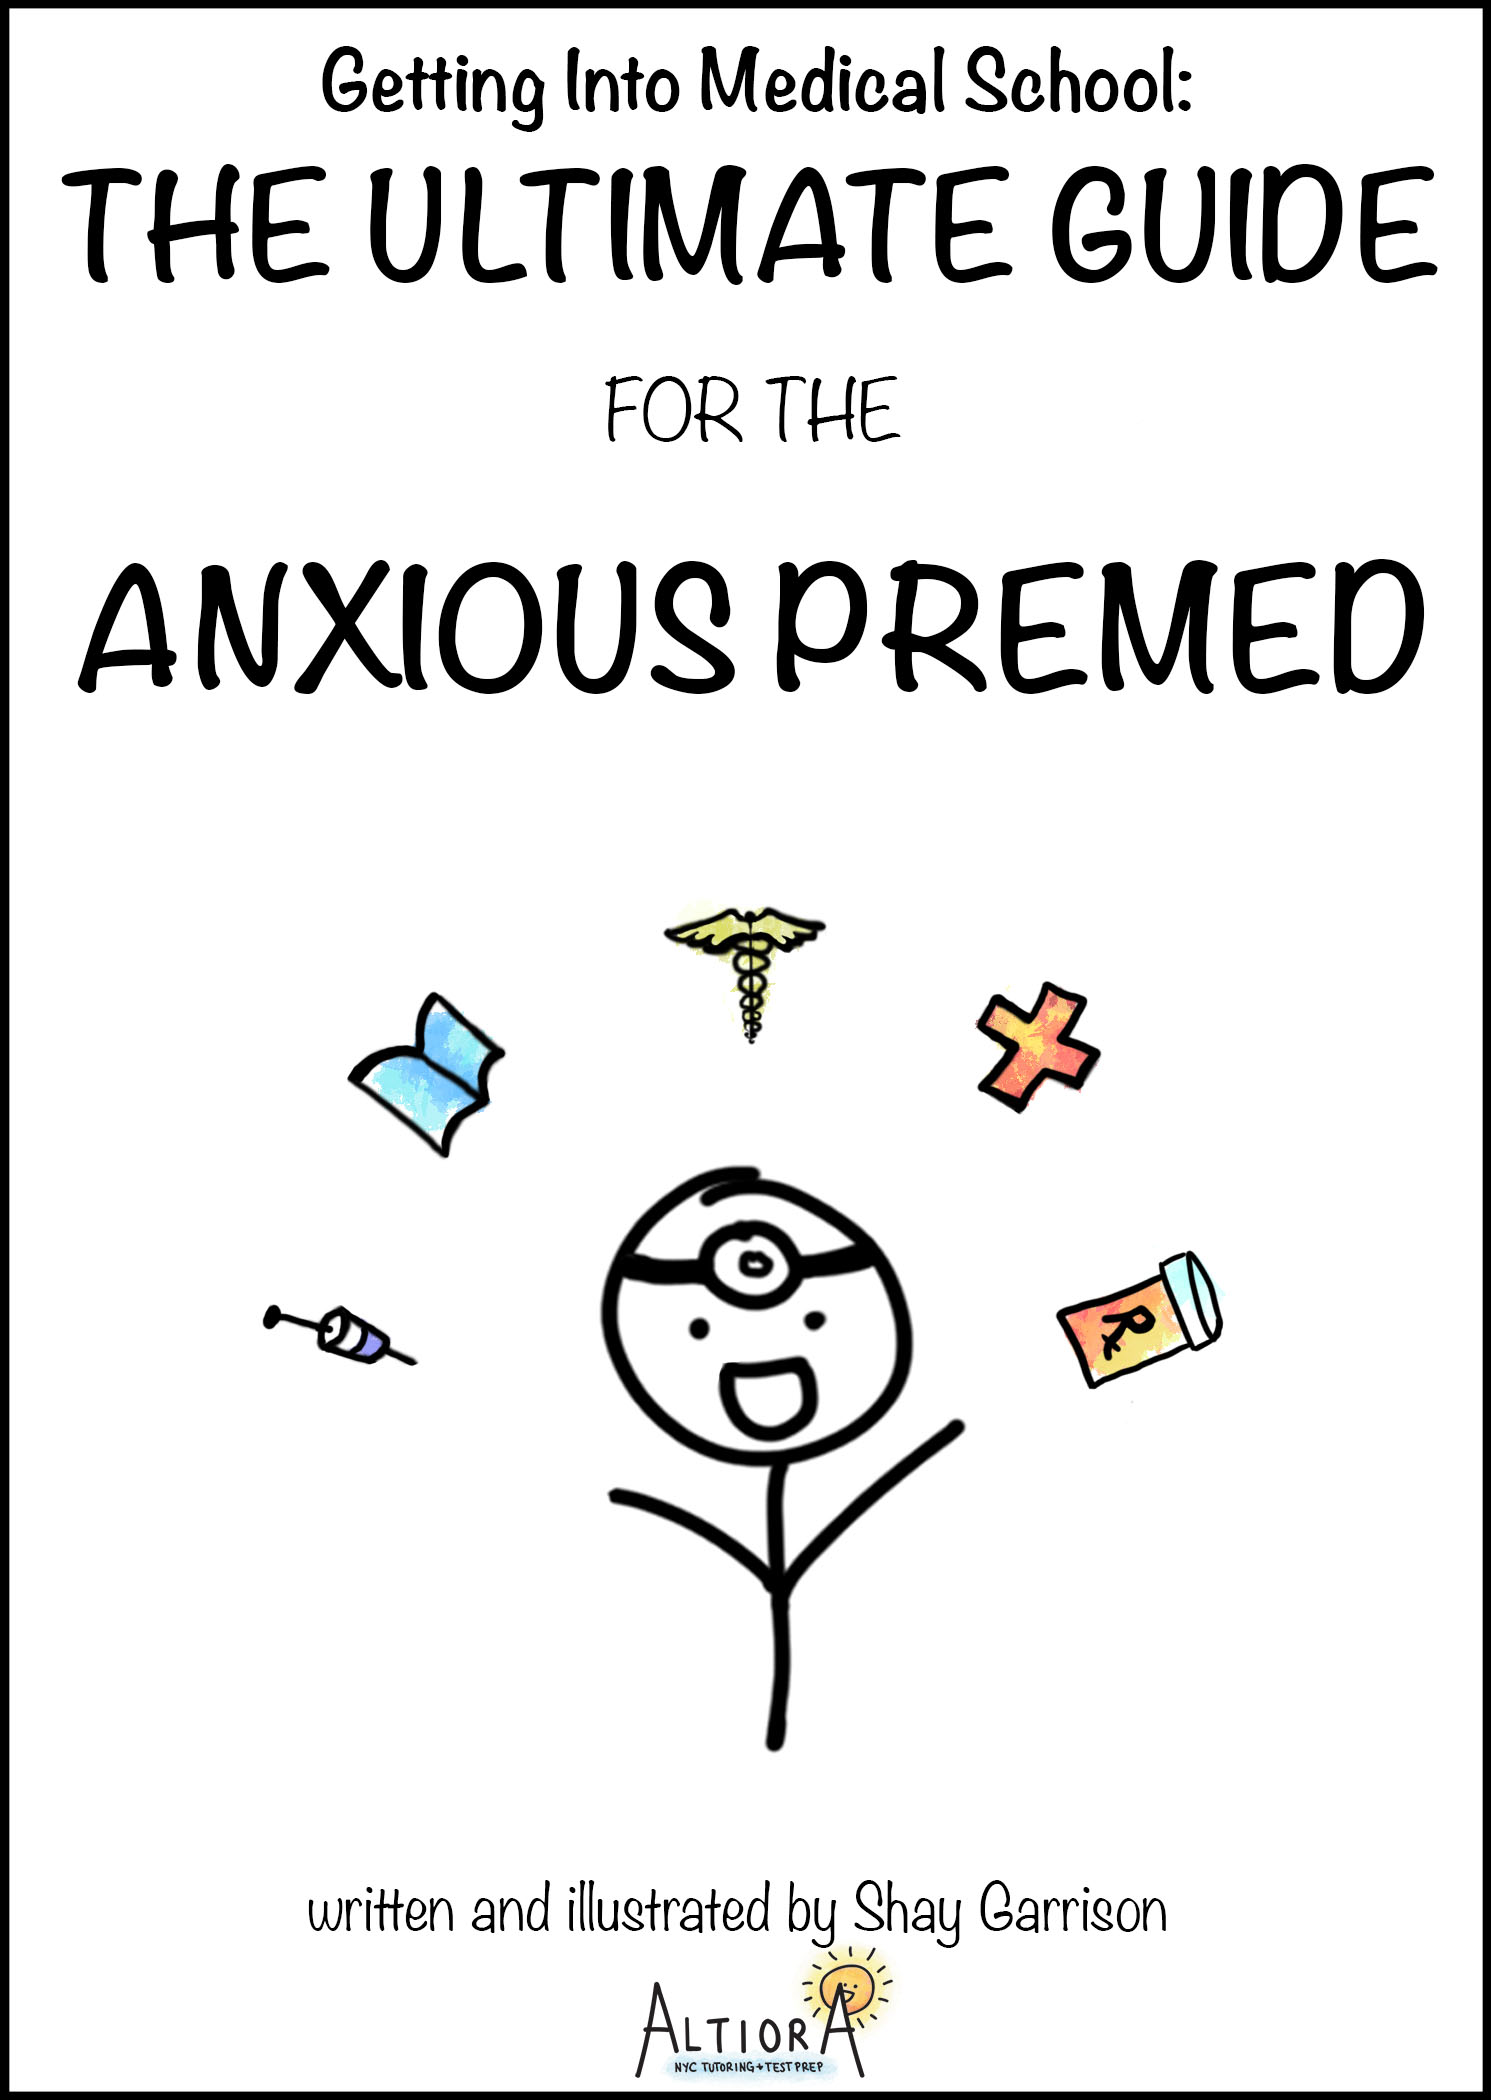 Getting Into Medical School: The Ultimate Guide for the Anxious Premed, an  Ebook by Shay Garrison